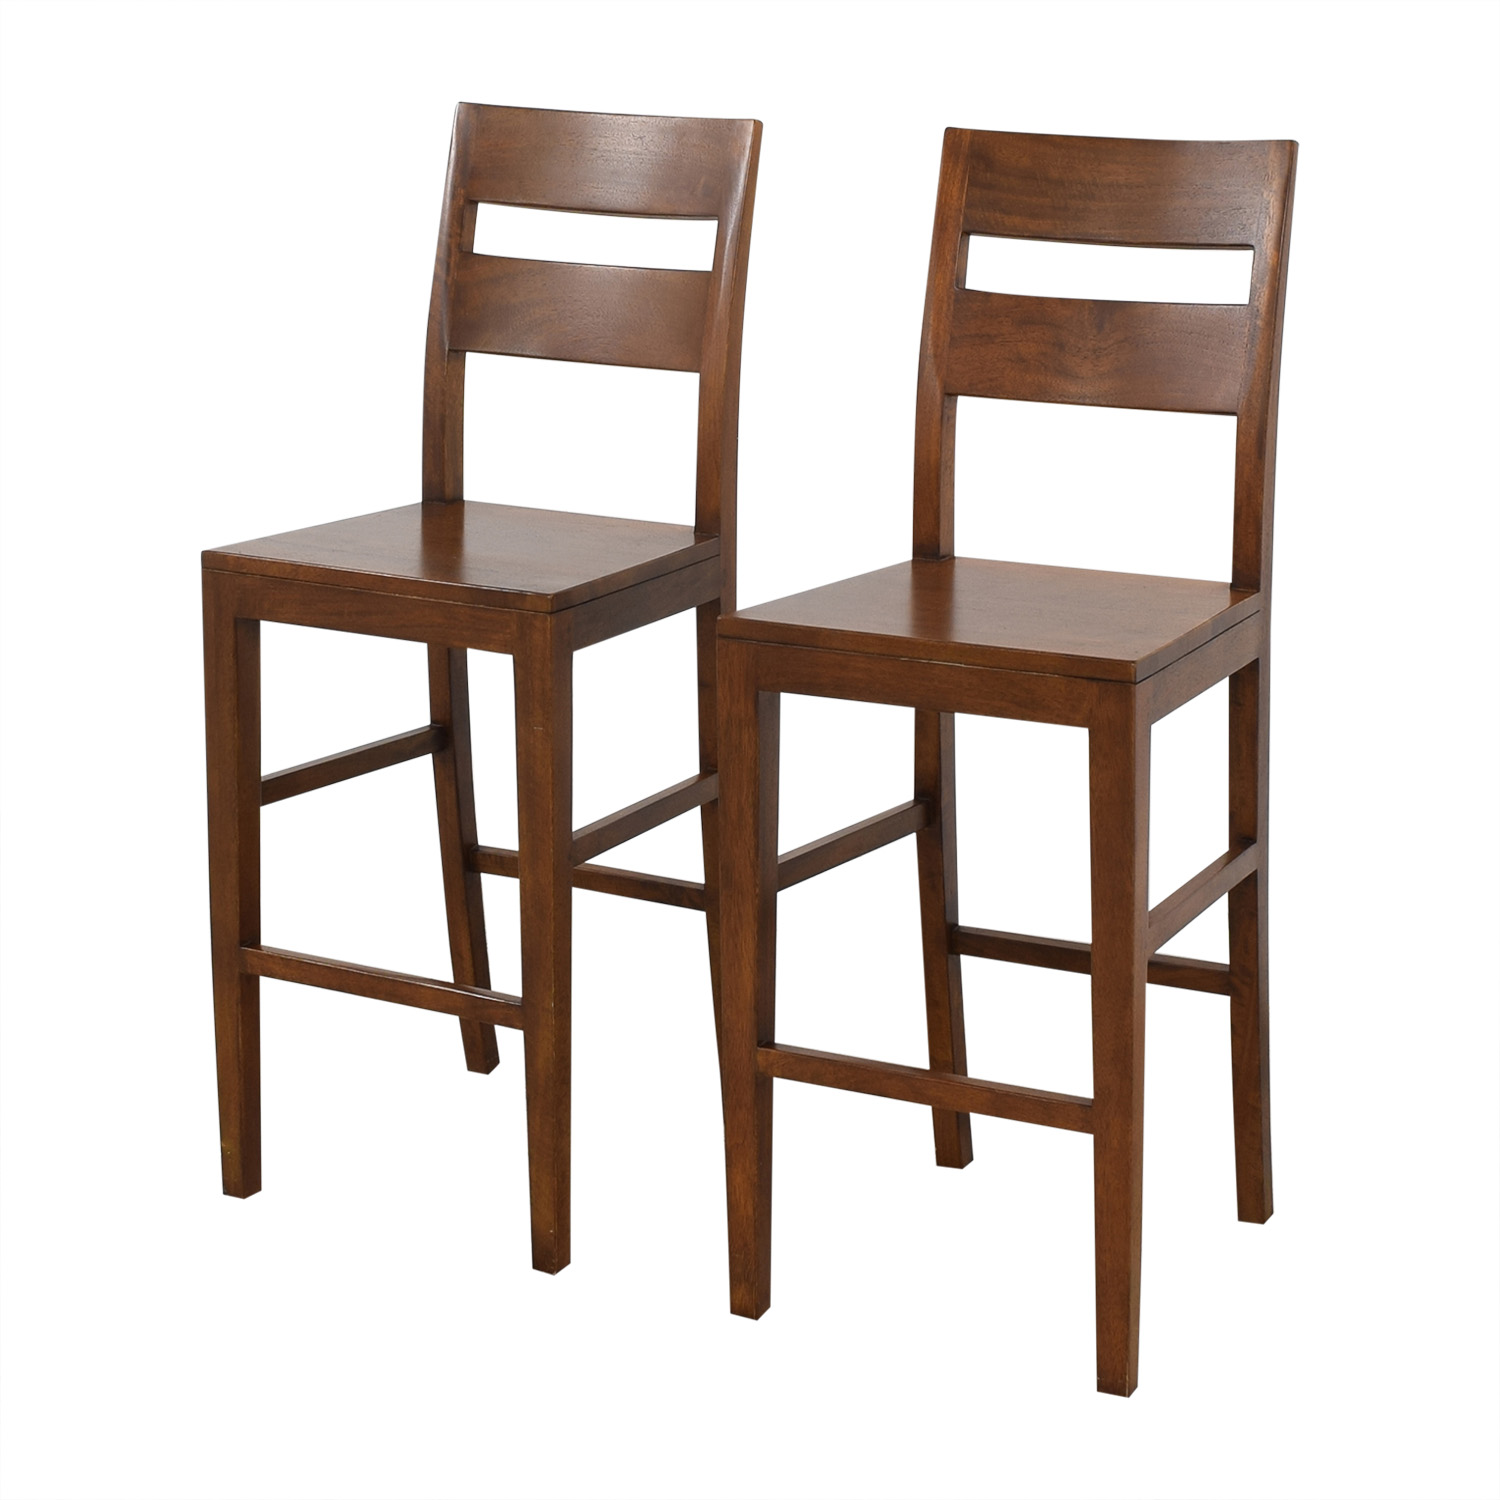 shop Crate and Barrel Counter Stools Crate & Barrel Chairs